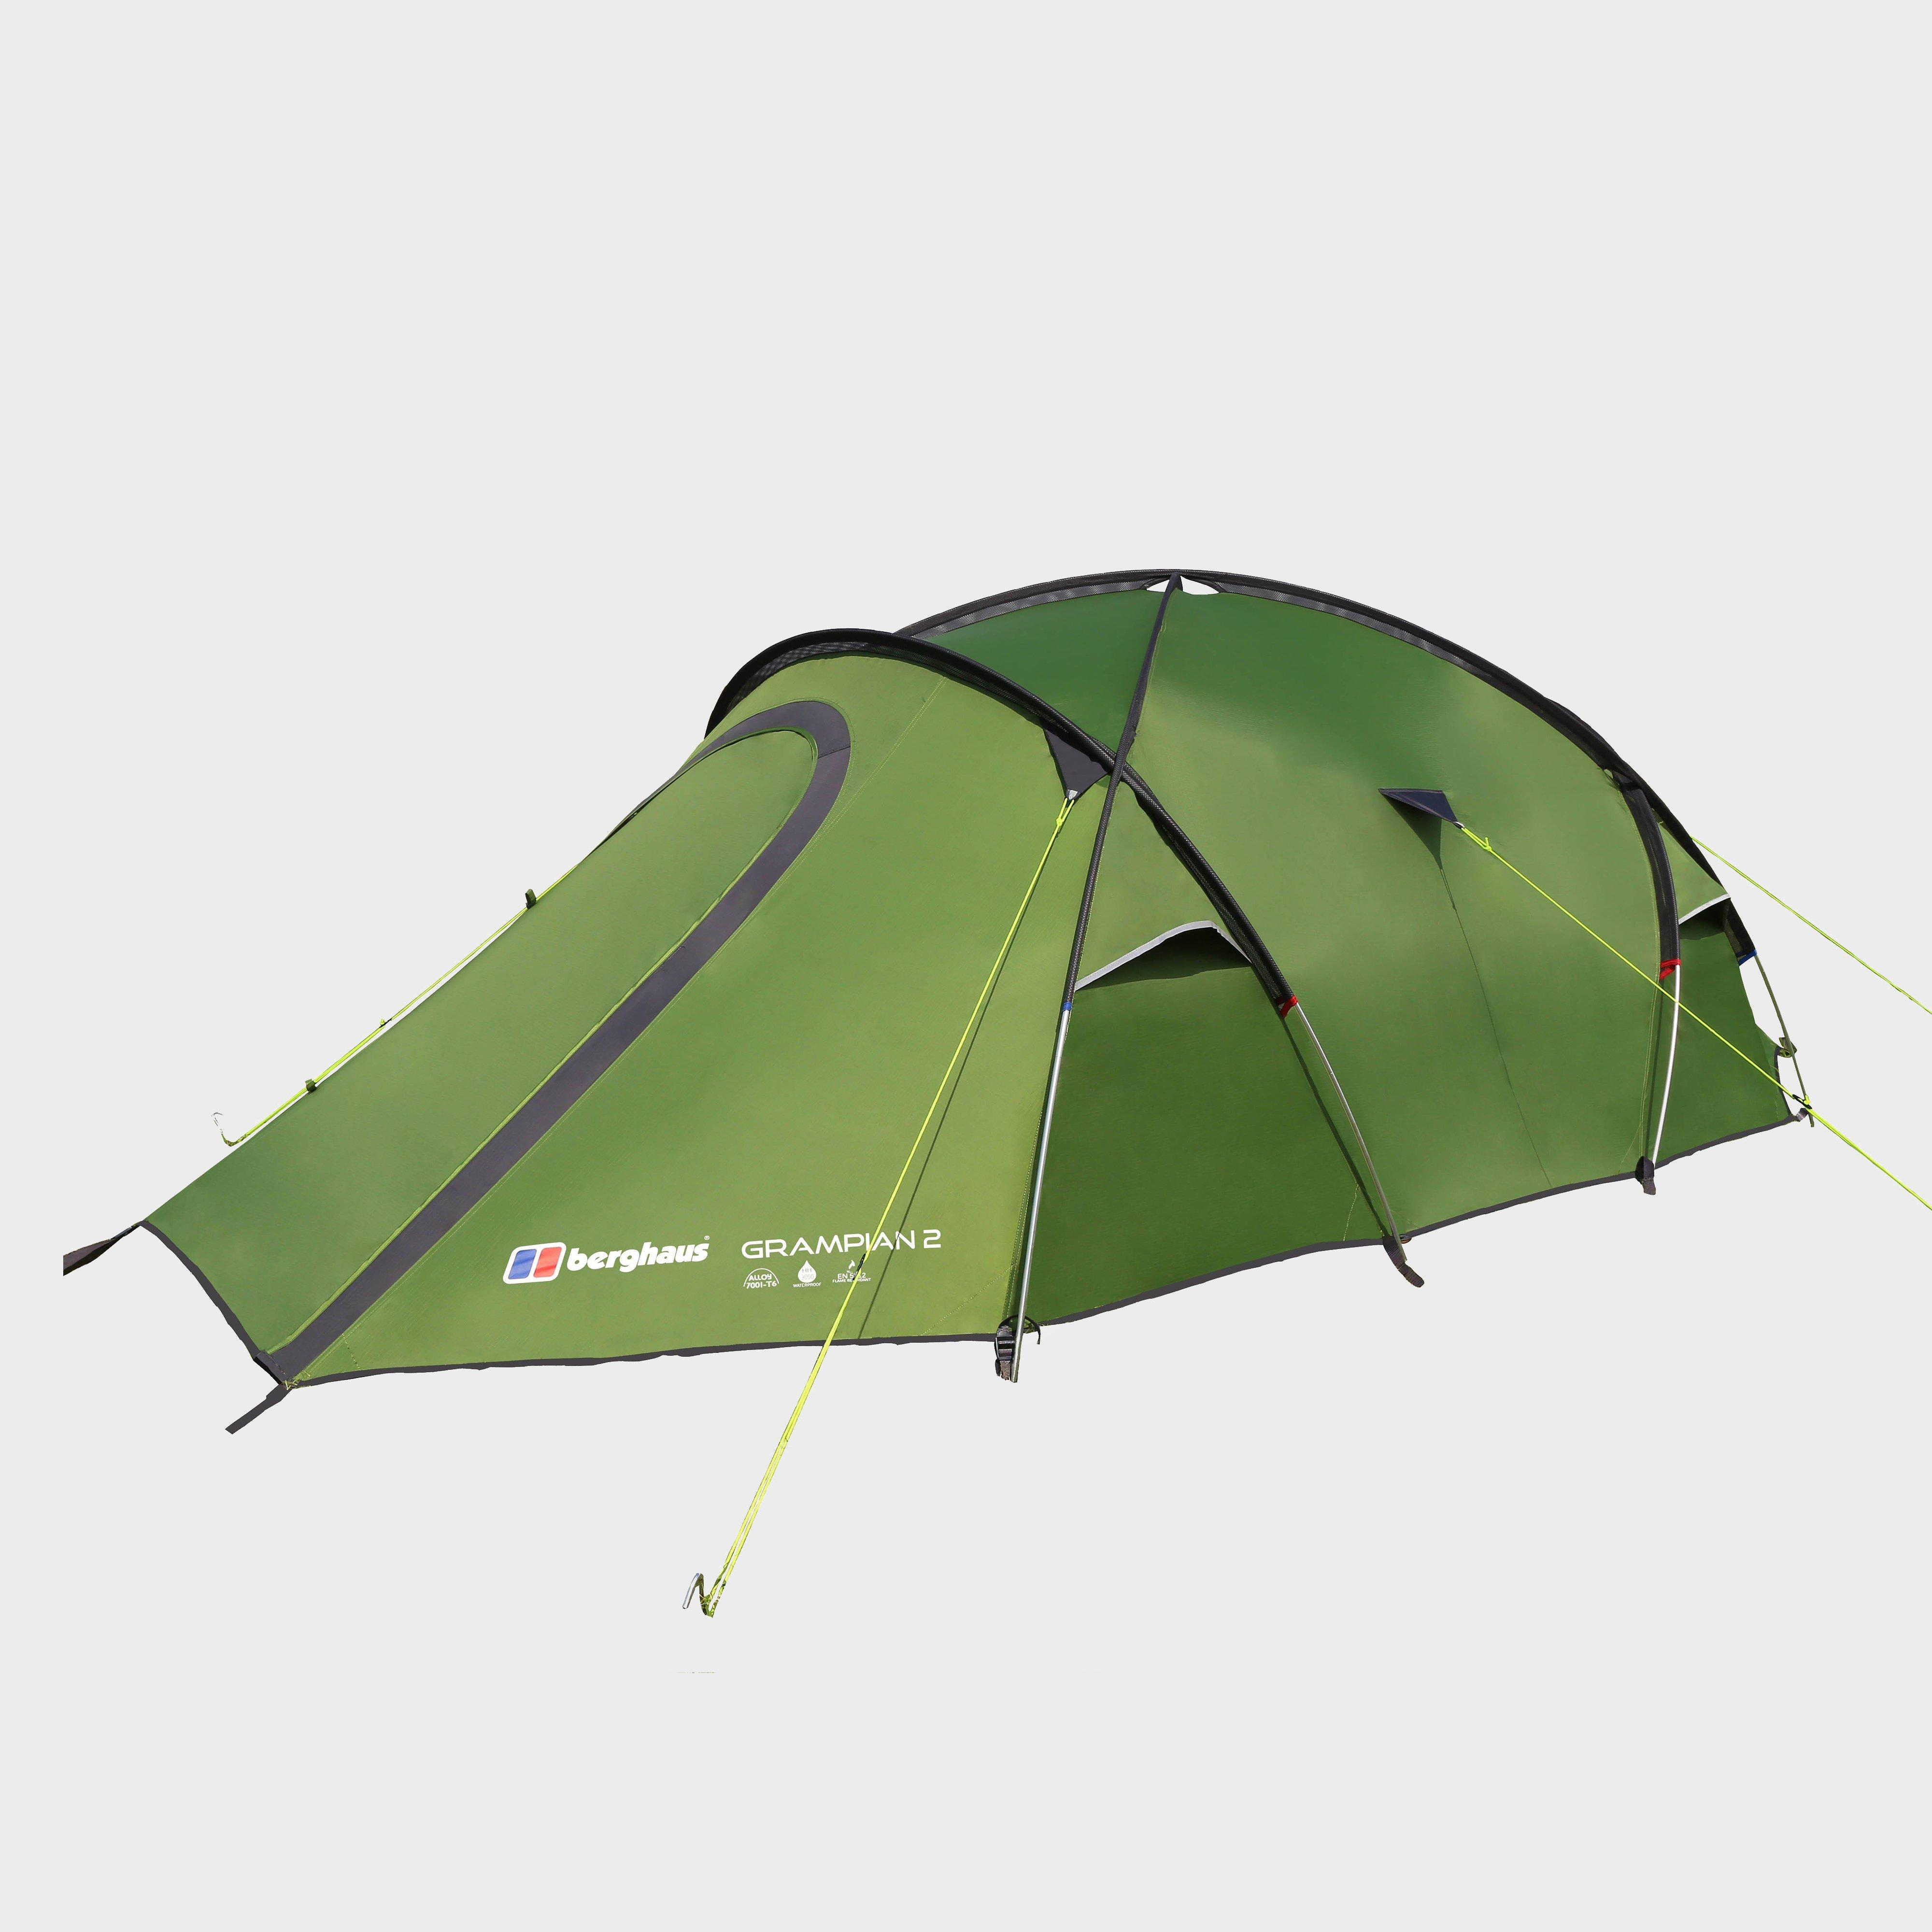 BERGHAUS Gr&ian 2 Person Tent  sc 1 st  Blacks & 2 Person Tents | Blacks